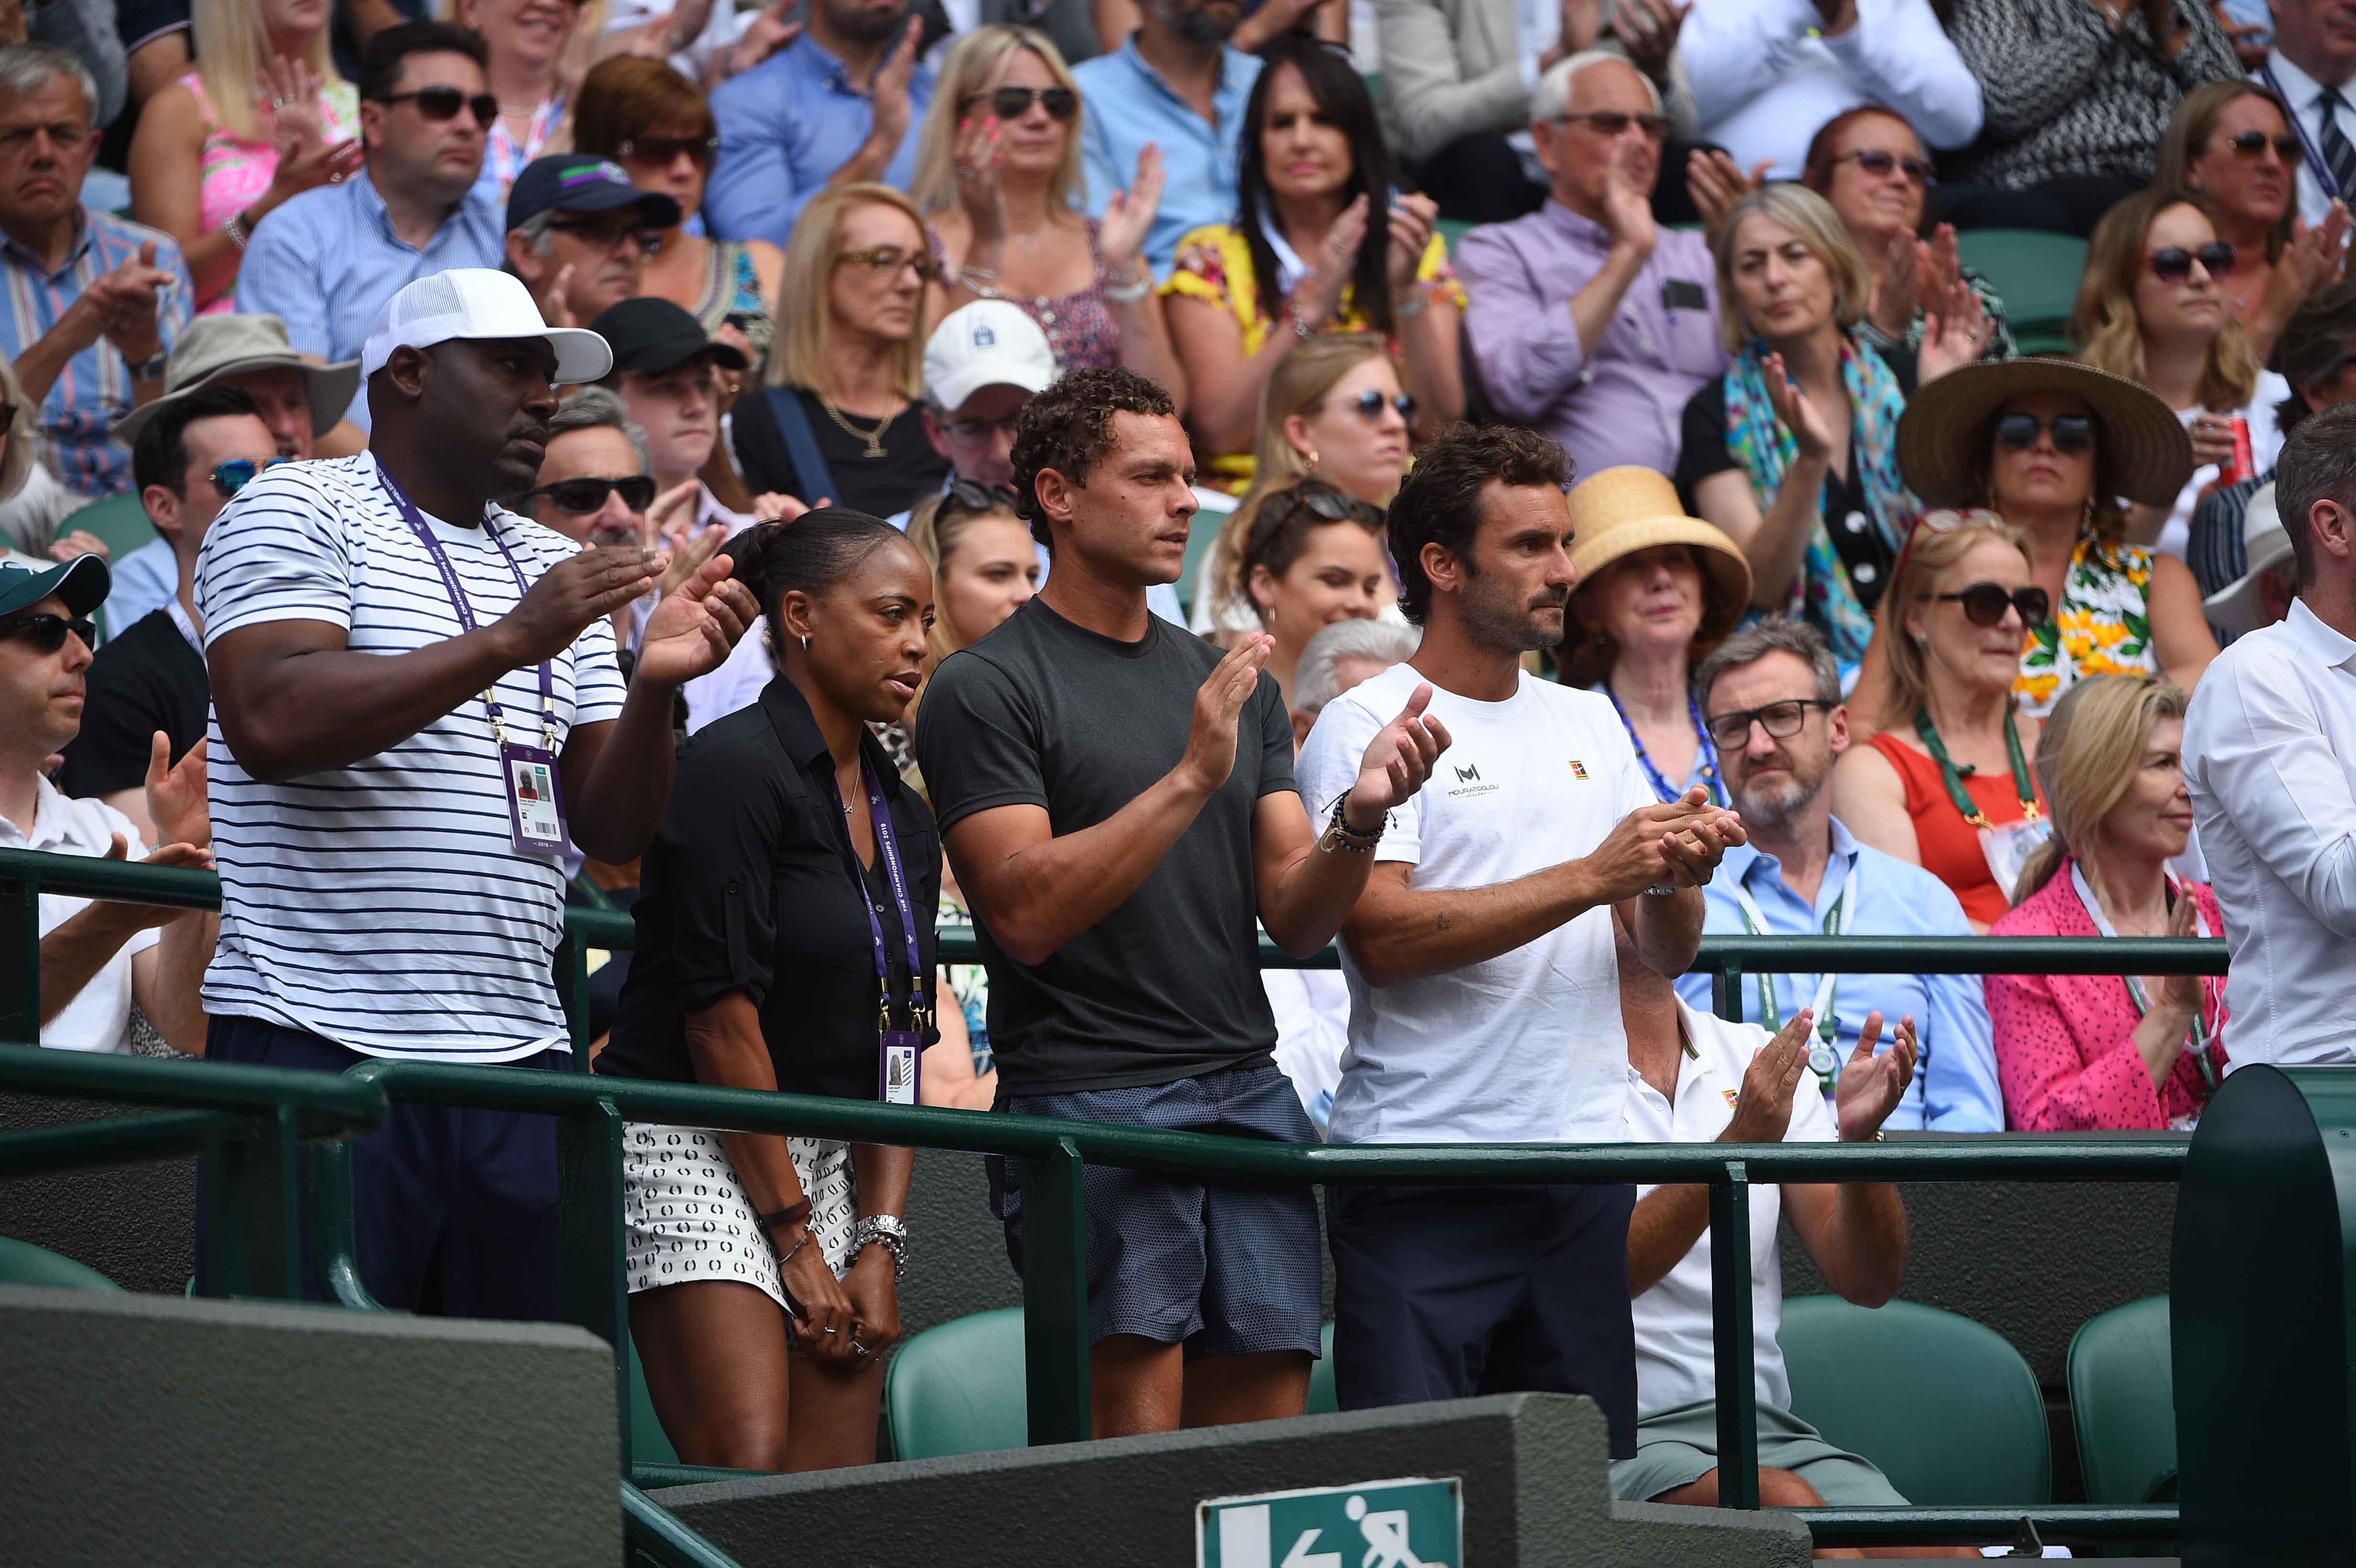 Cori Gauff's box at Wimbledon 2019